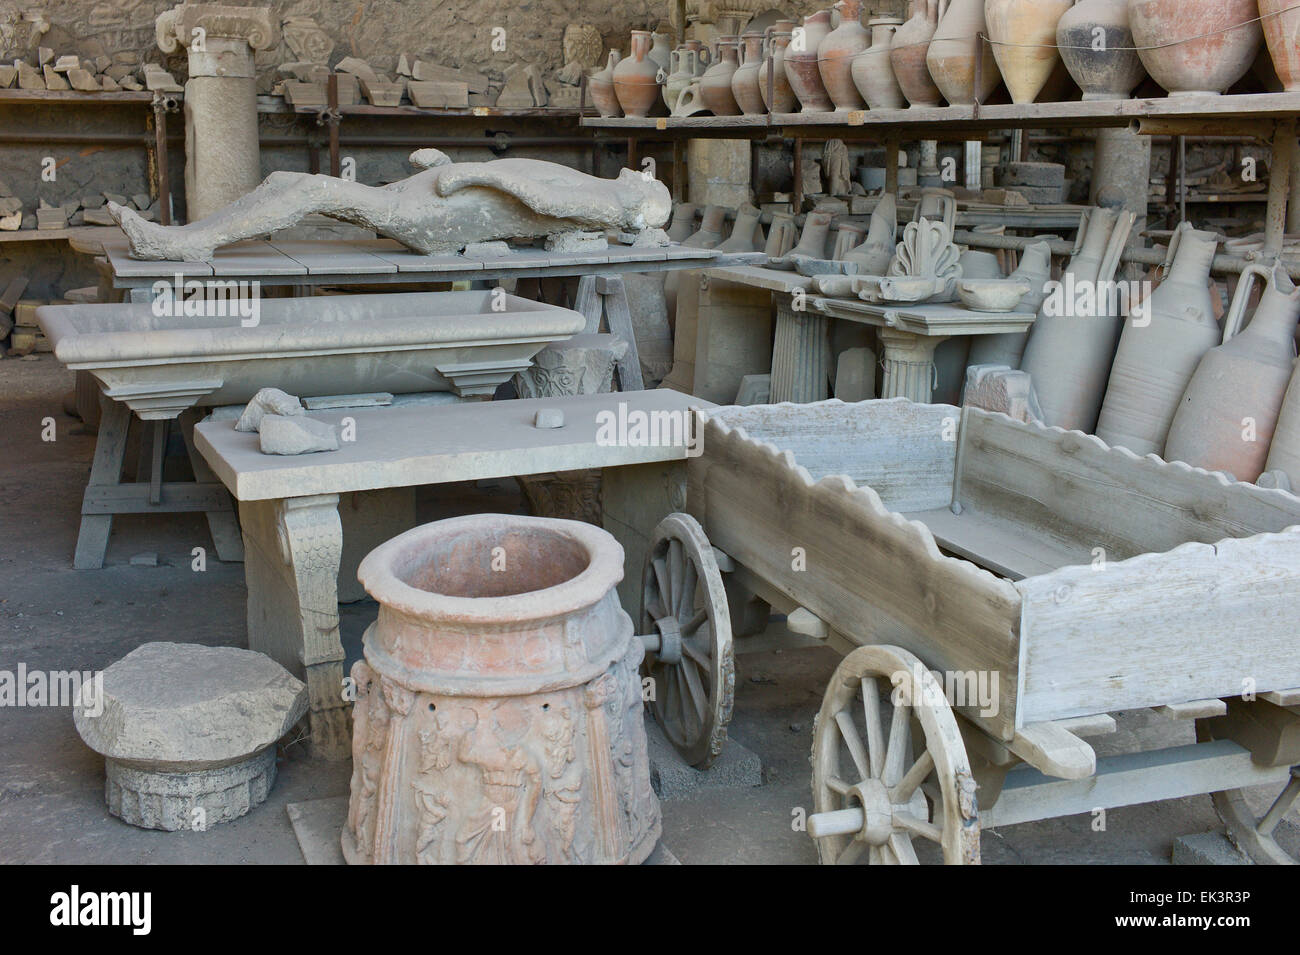 Storage of artefacts including a plaster cast of human remains and amphora pots in Pompei, Italy - Stock Image